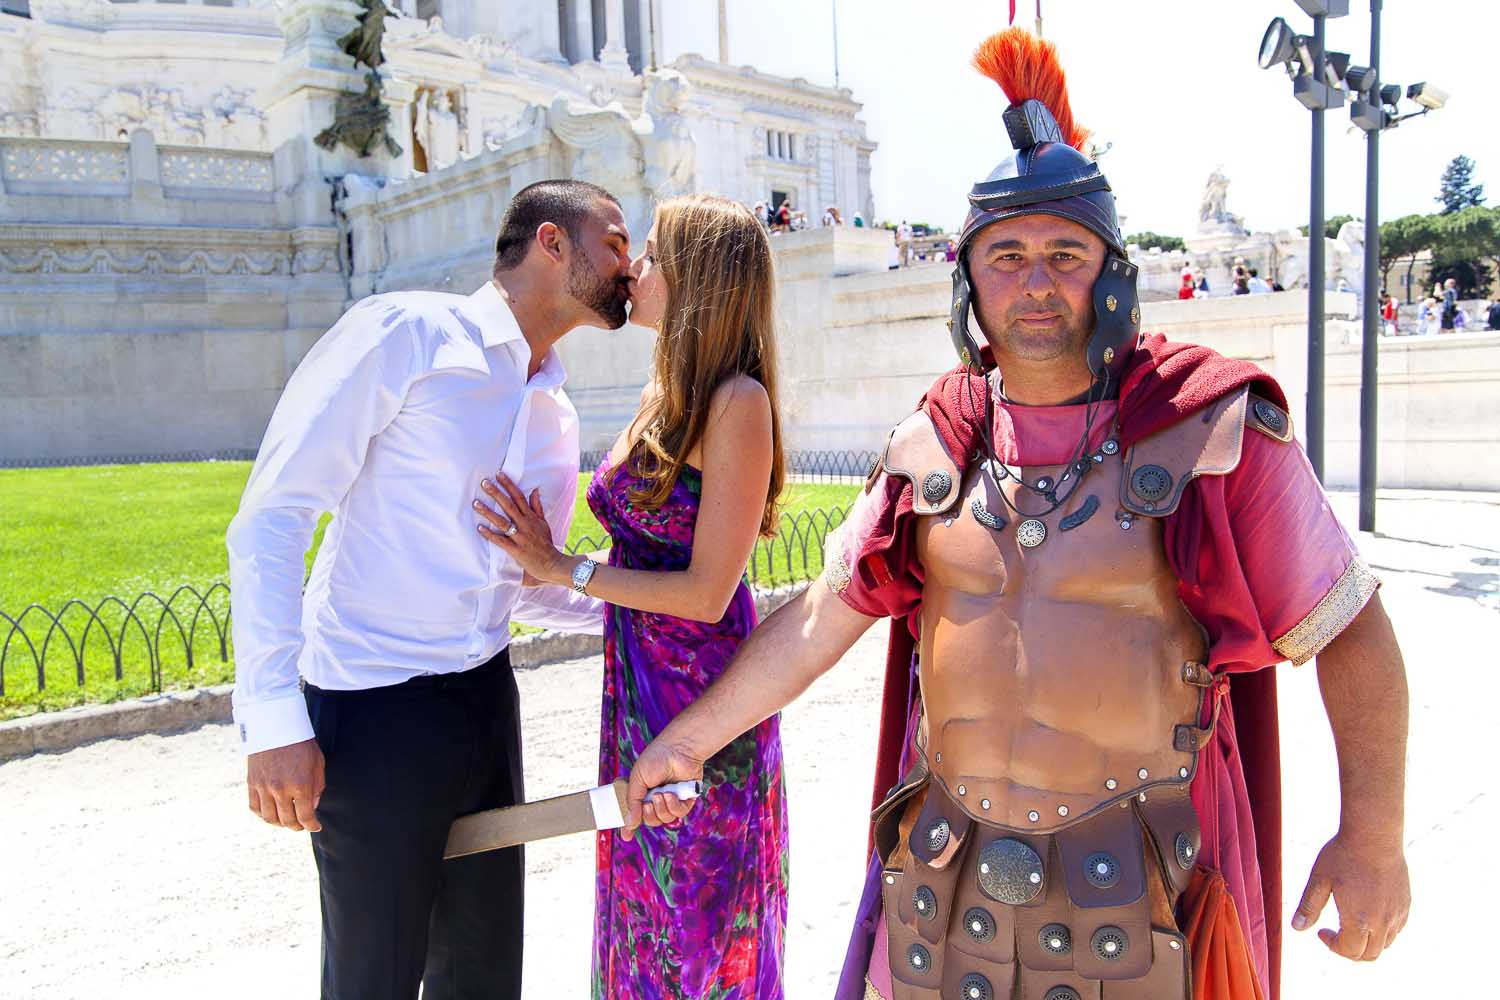 Funny picture of a couple during a photography session with a roman centurion